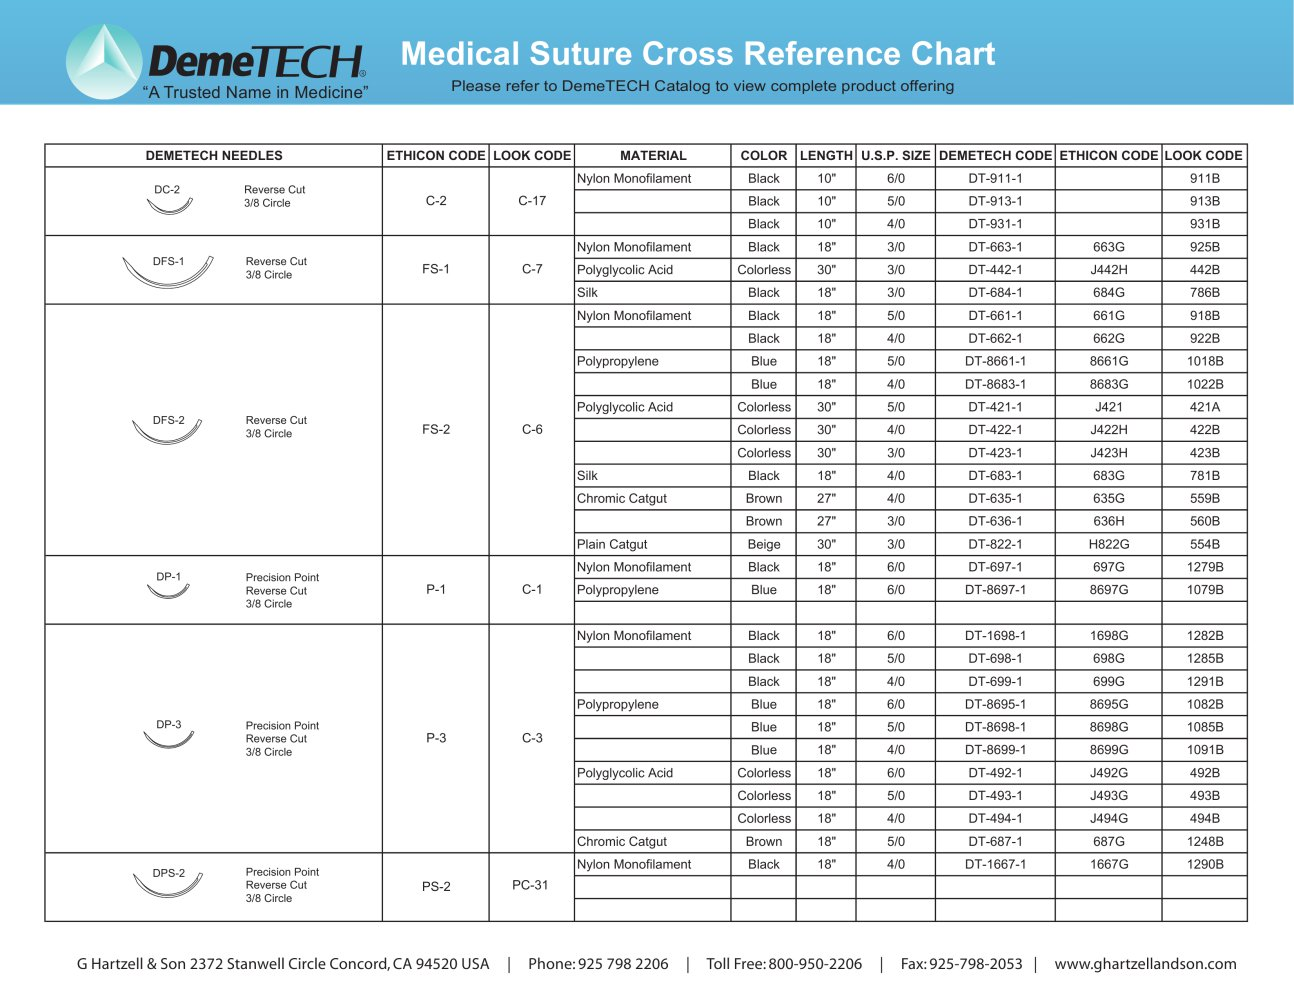 Medical suture cross reference chart g hartzell son inc medical suture cross reference chart 1 1 pages nvjuhfo Image collections